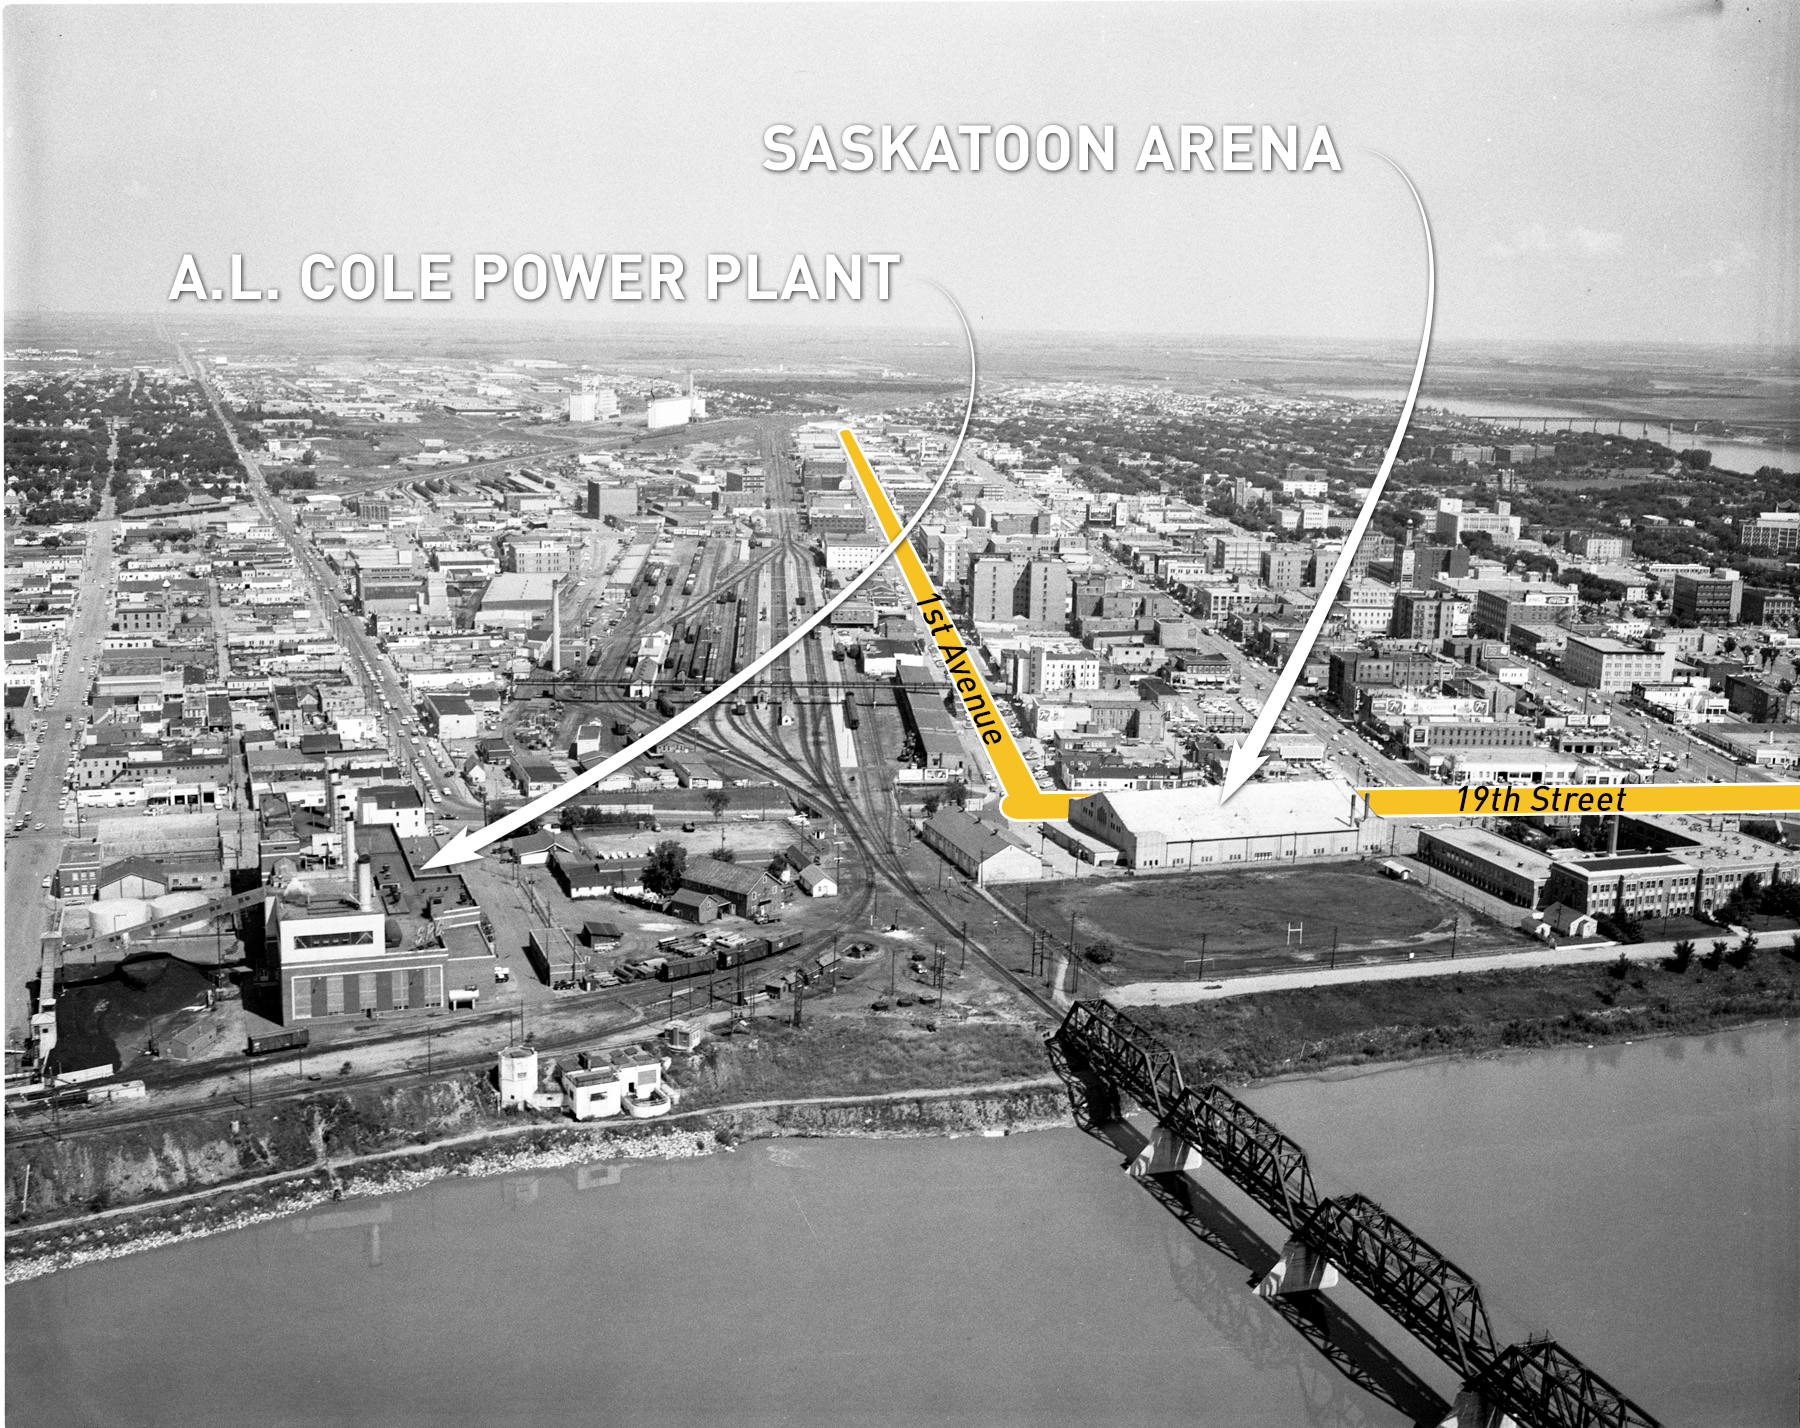 An aerial shot showing the location of the A.L. Cole power plant (River Landing today) and its proximity to the old Saskatoon Arena. (Saskatoon Public Library Local History Room - Photo CP-62-2)